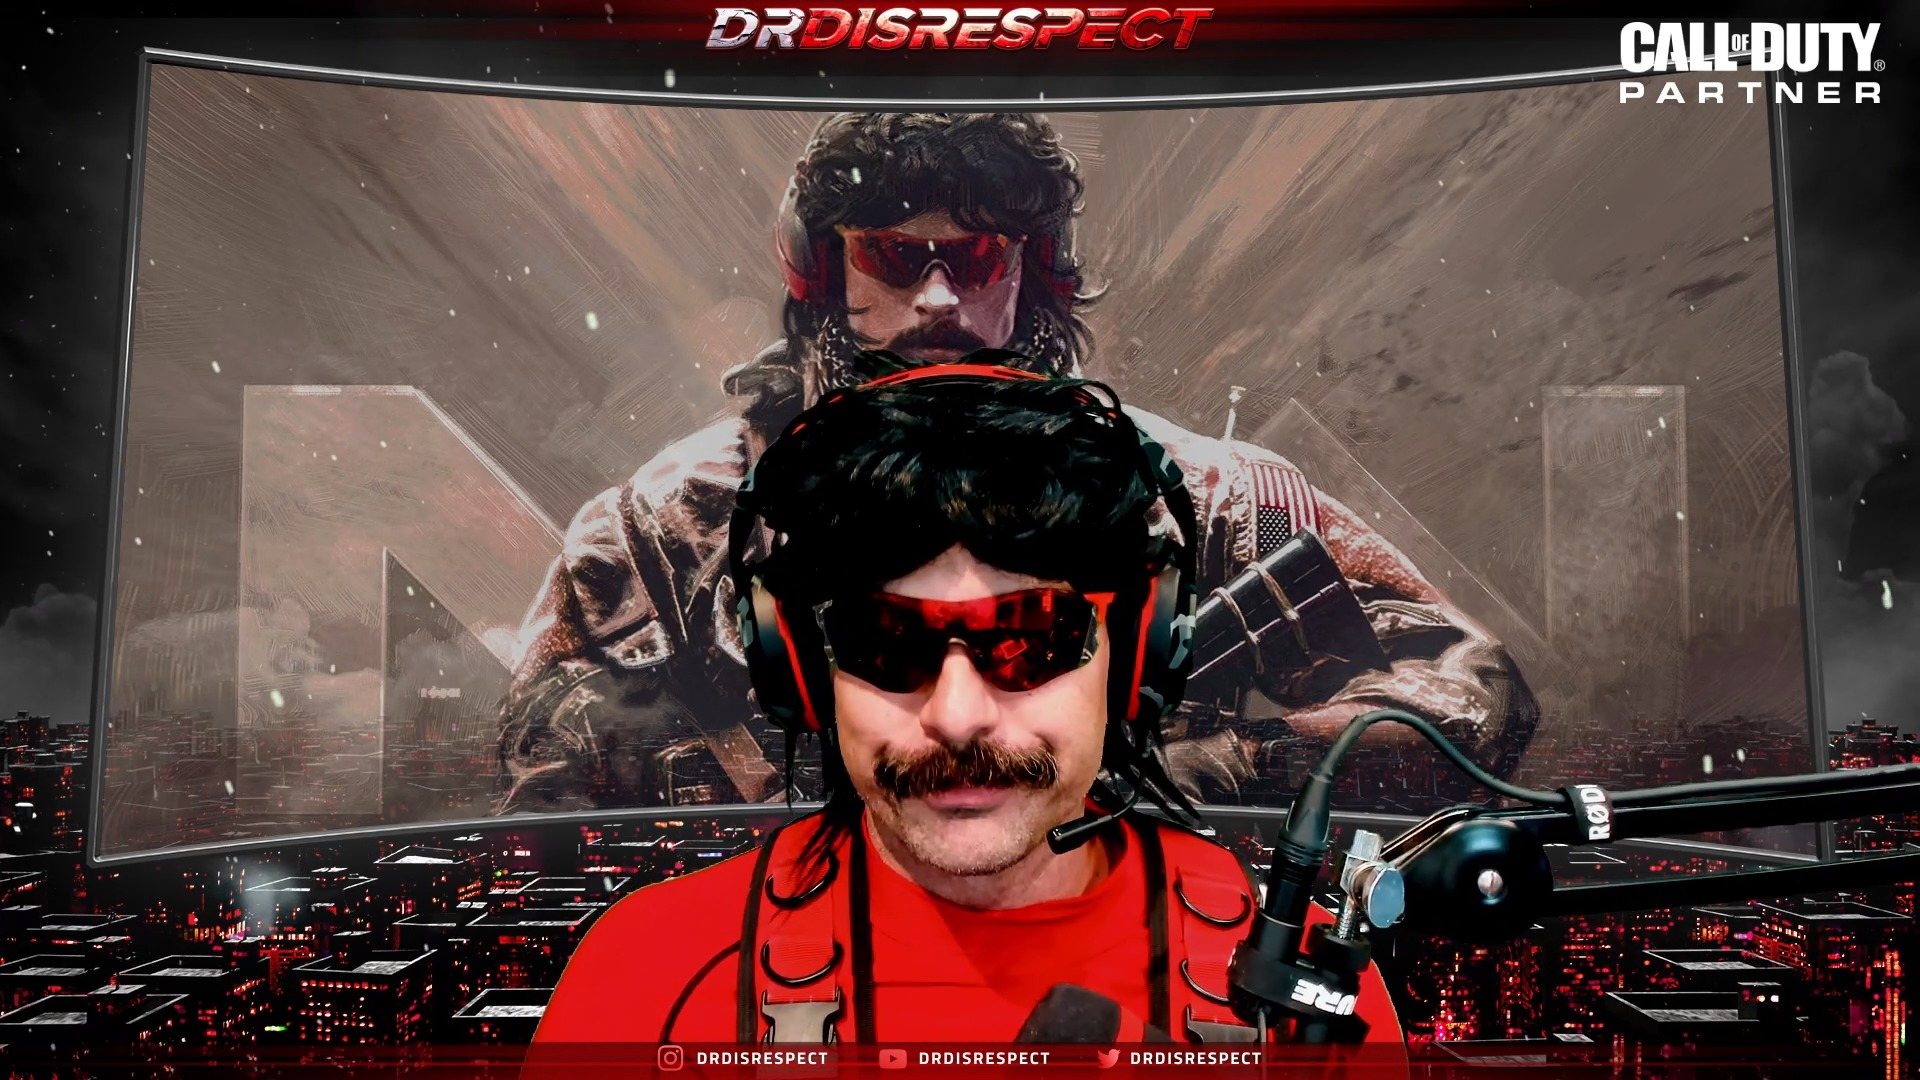 Dr. Disrespect teaming with Skybound Entertainment for potential TV show